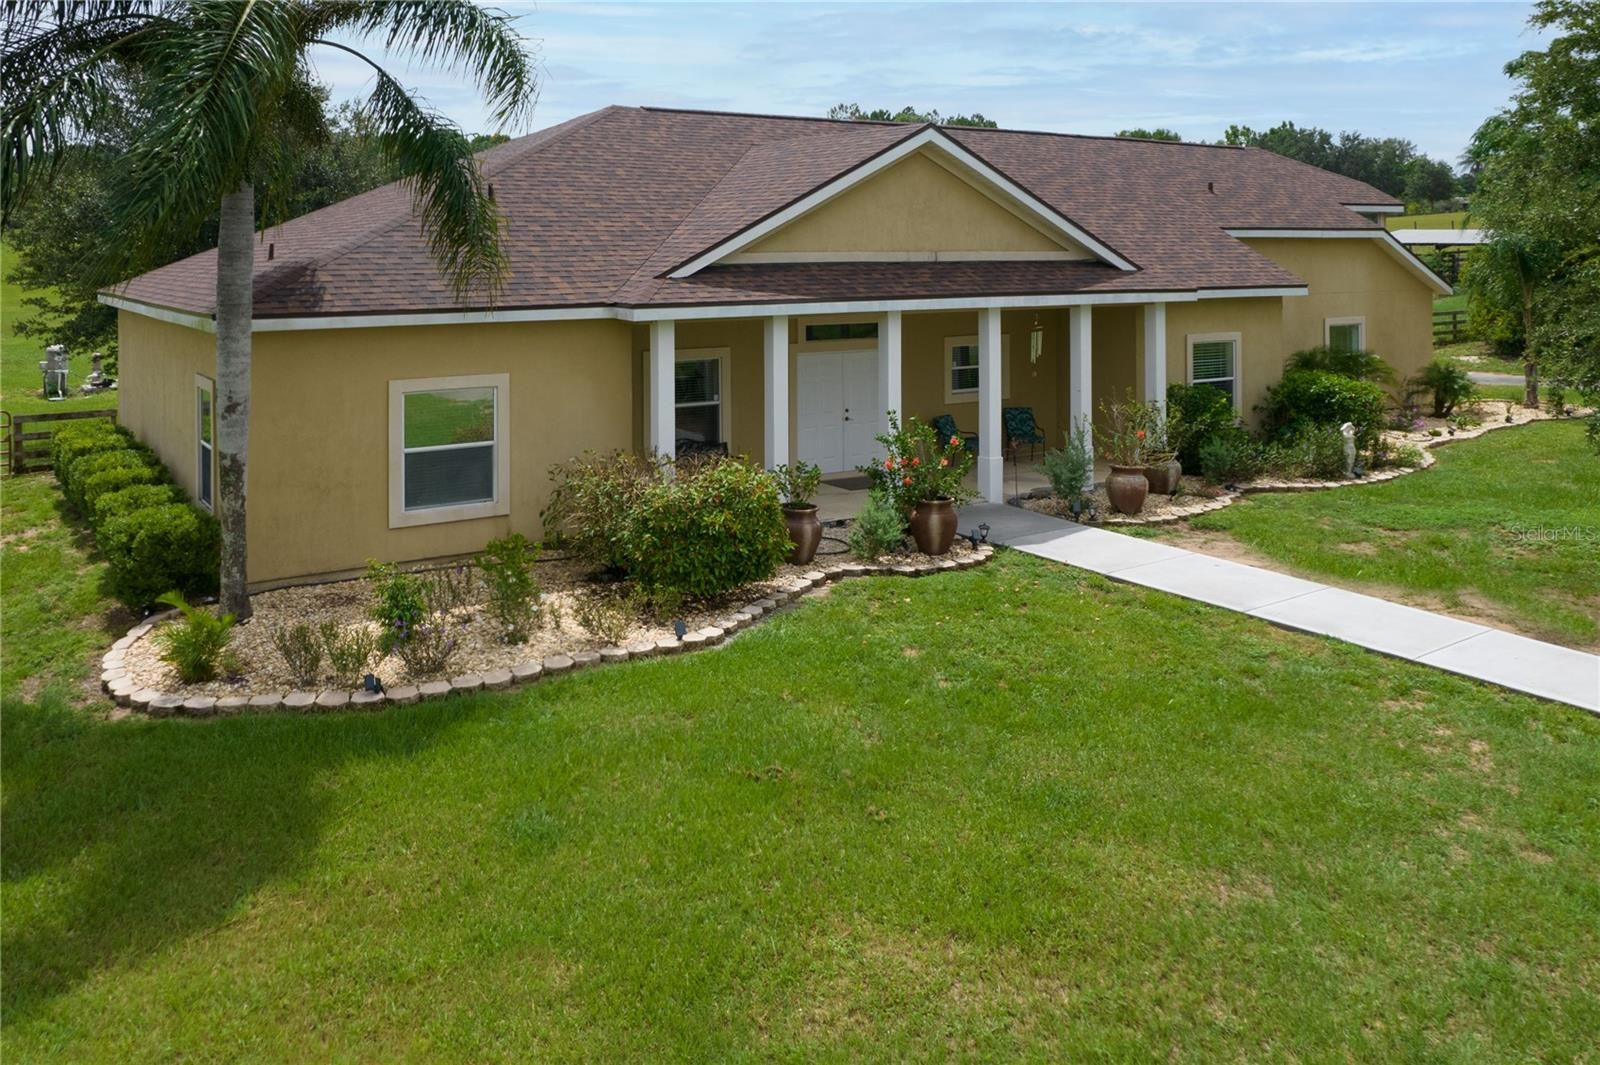 20248 SUGARLOAF MOUNTAIN ROAD, Clermont, FL 34715 - #: G5043620